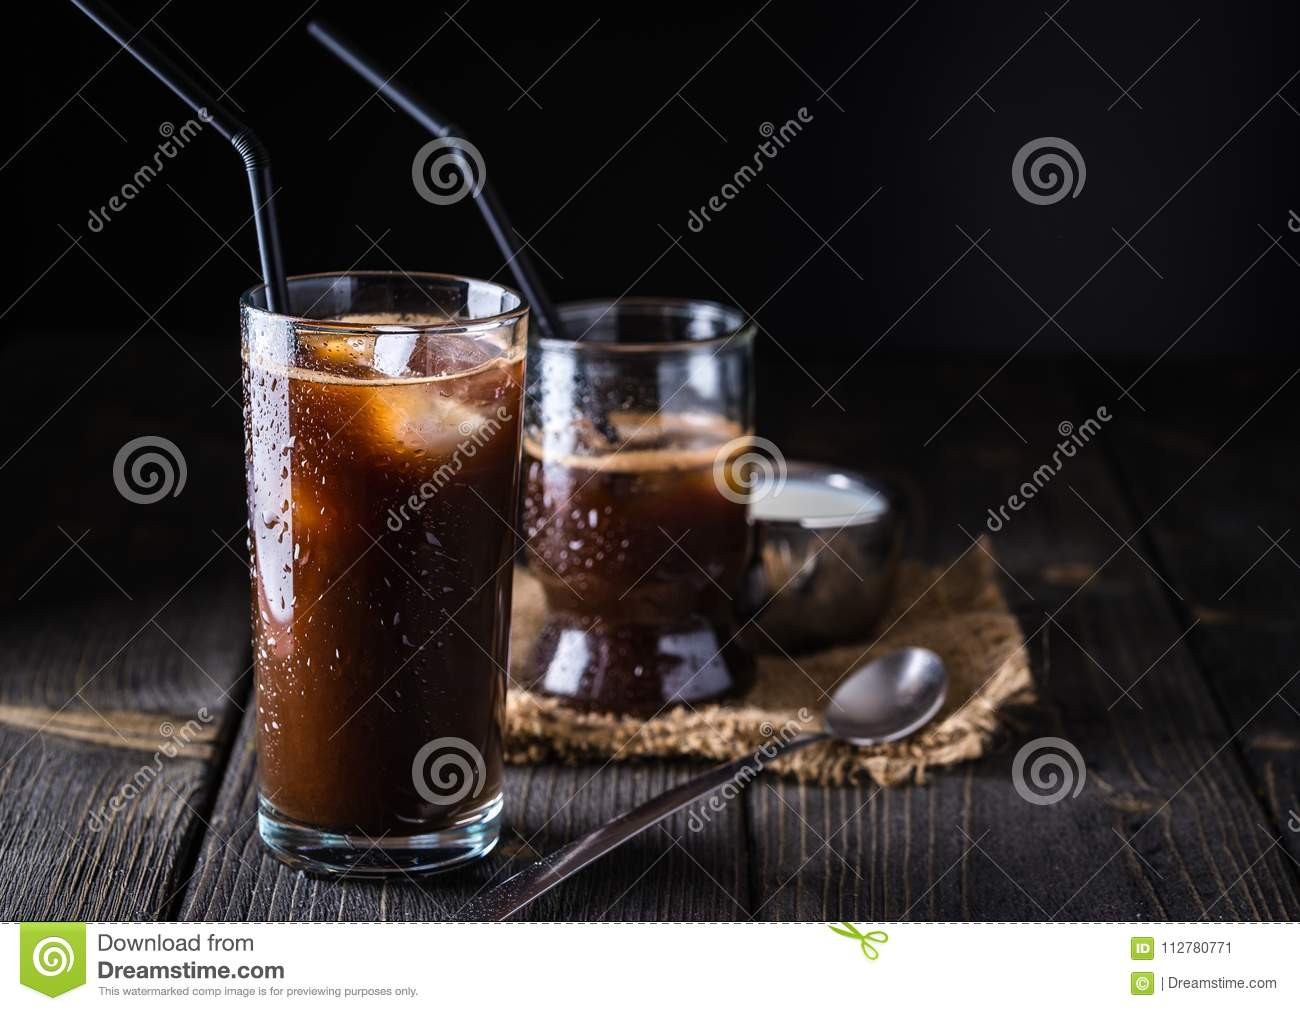 Ice coffee in a tall glass on dark natural desk.